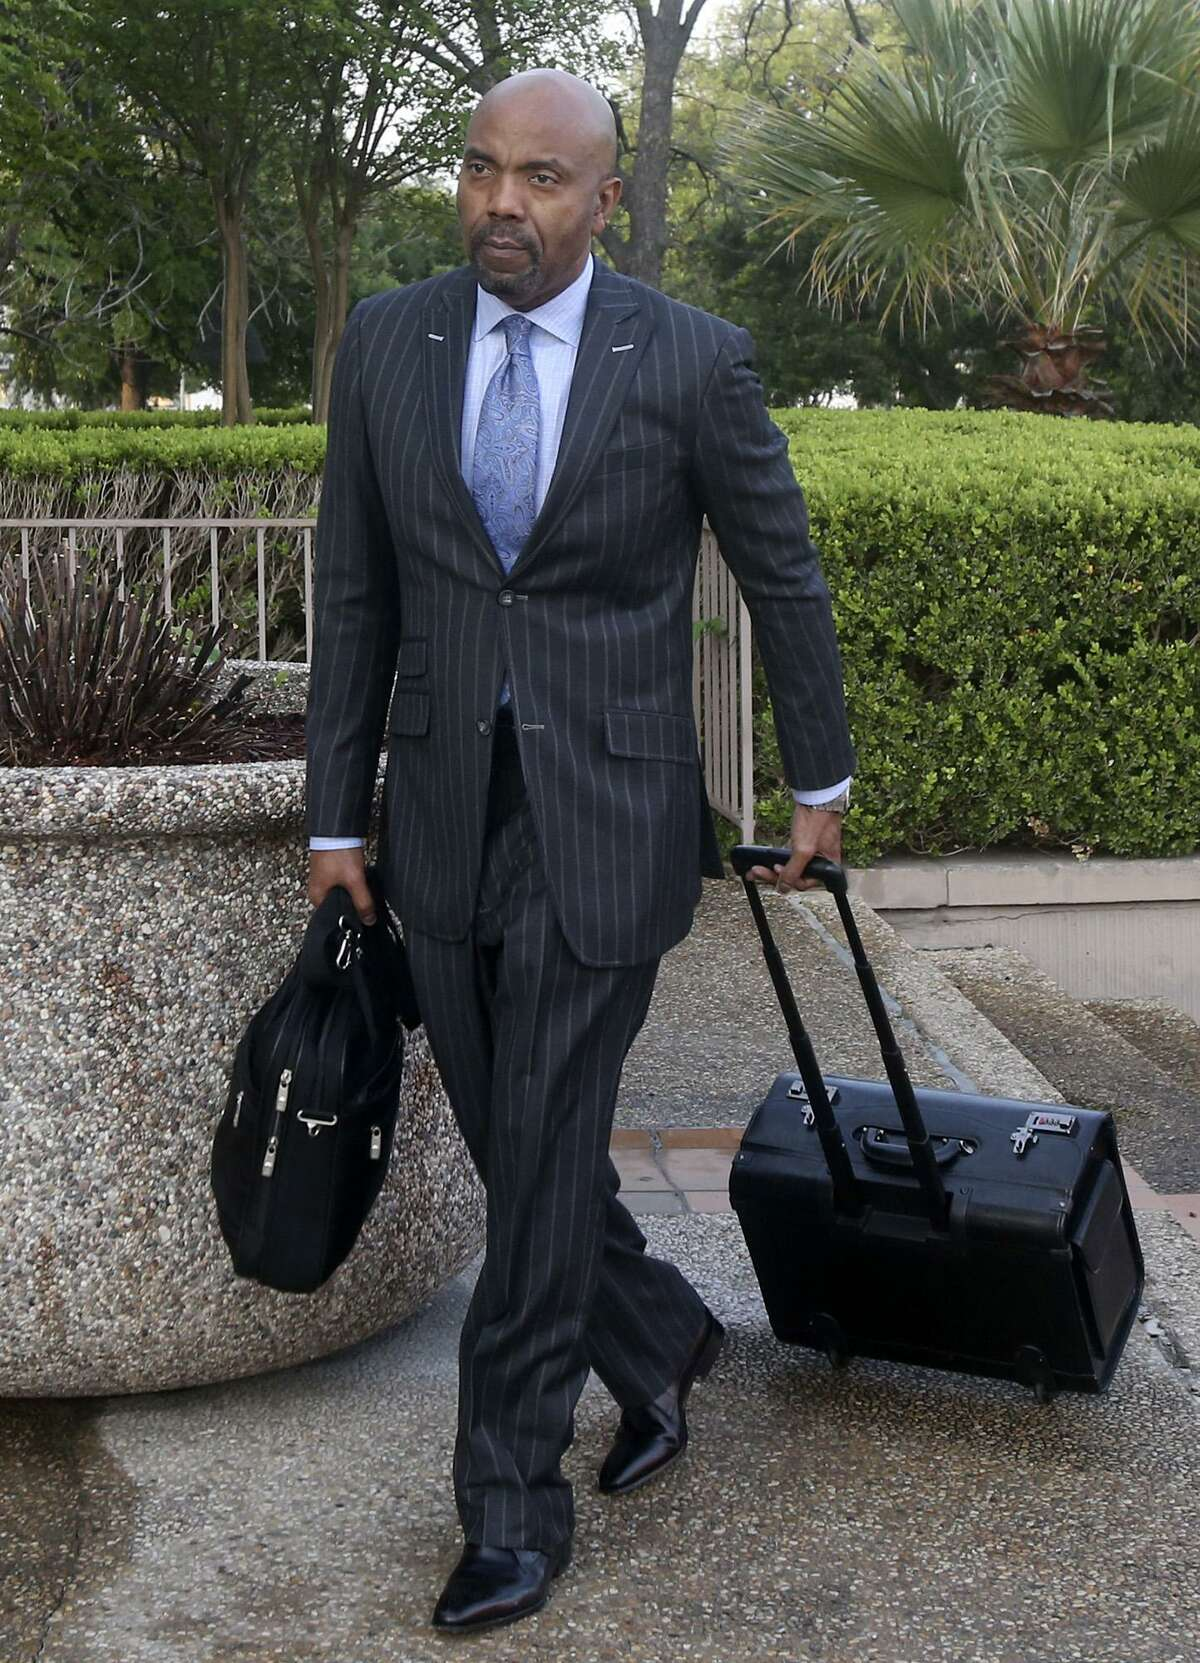 Attorney Daryl Washington walks toward the John H. Wood Federal Courthouse on March 27, 2017. Washington represents the family of Marquise Jones, who was fatally shot by San Antonio police officer Robert Encina in 2014.